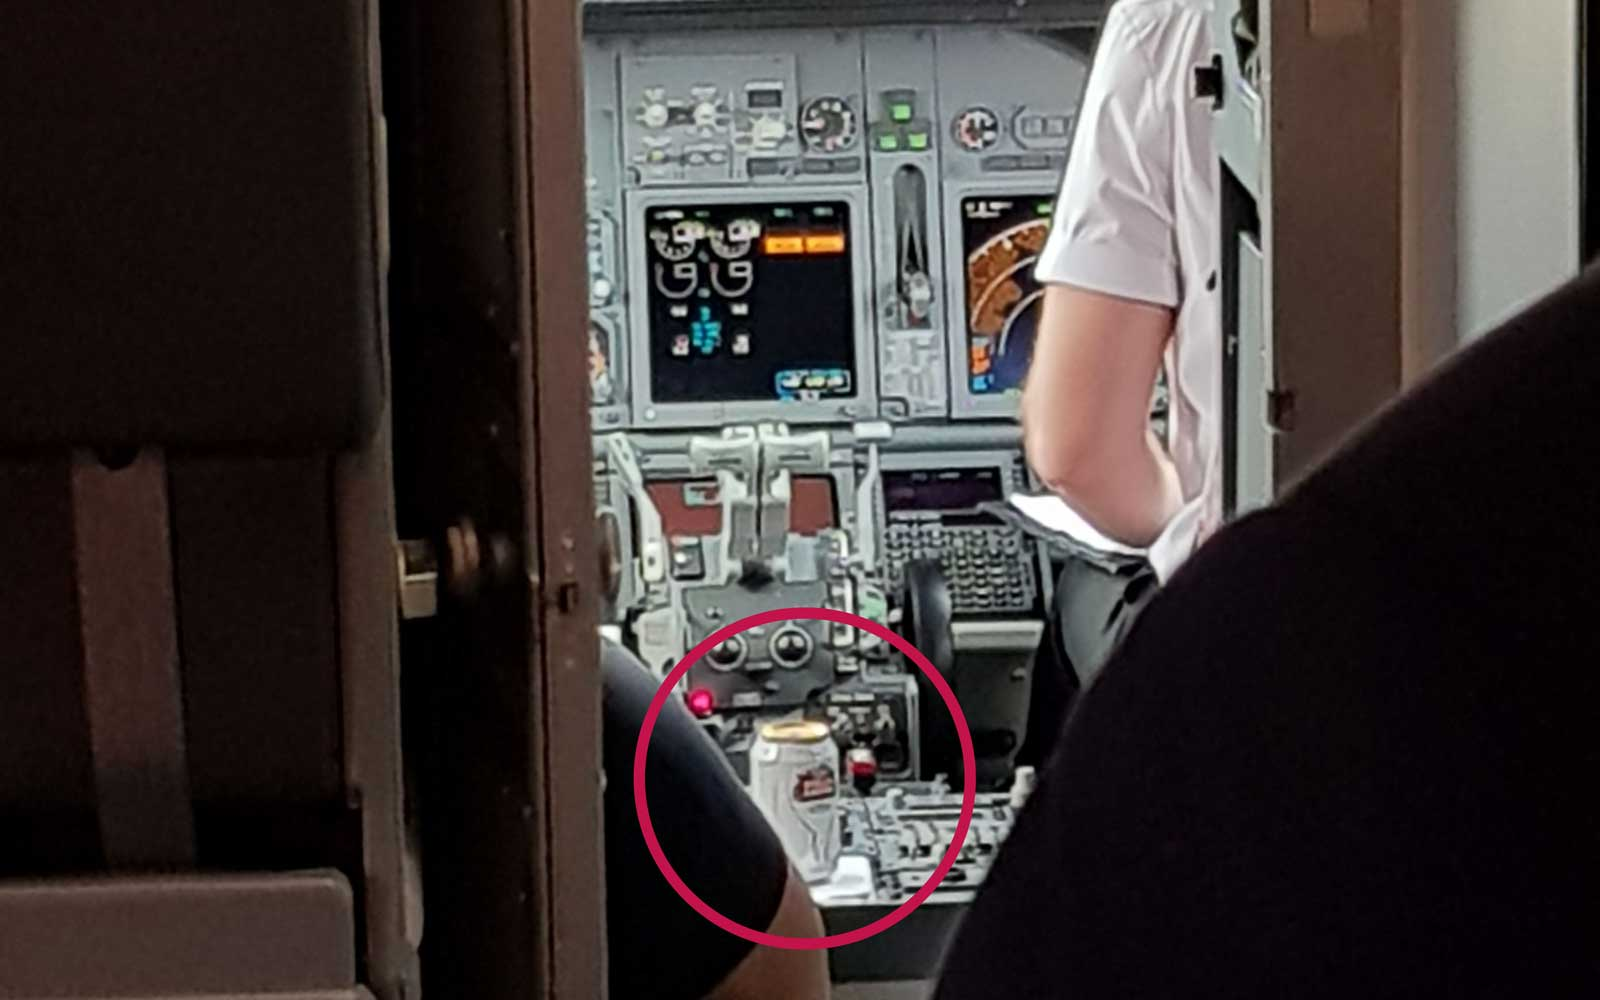 Beer Seen in Airplane Cockpit Upon Landing